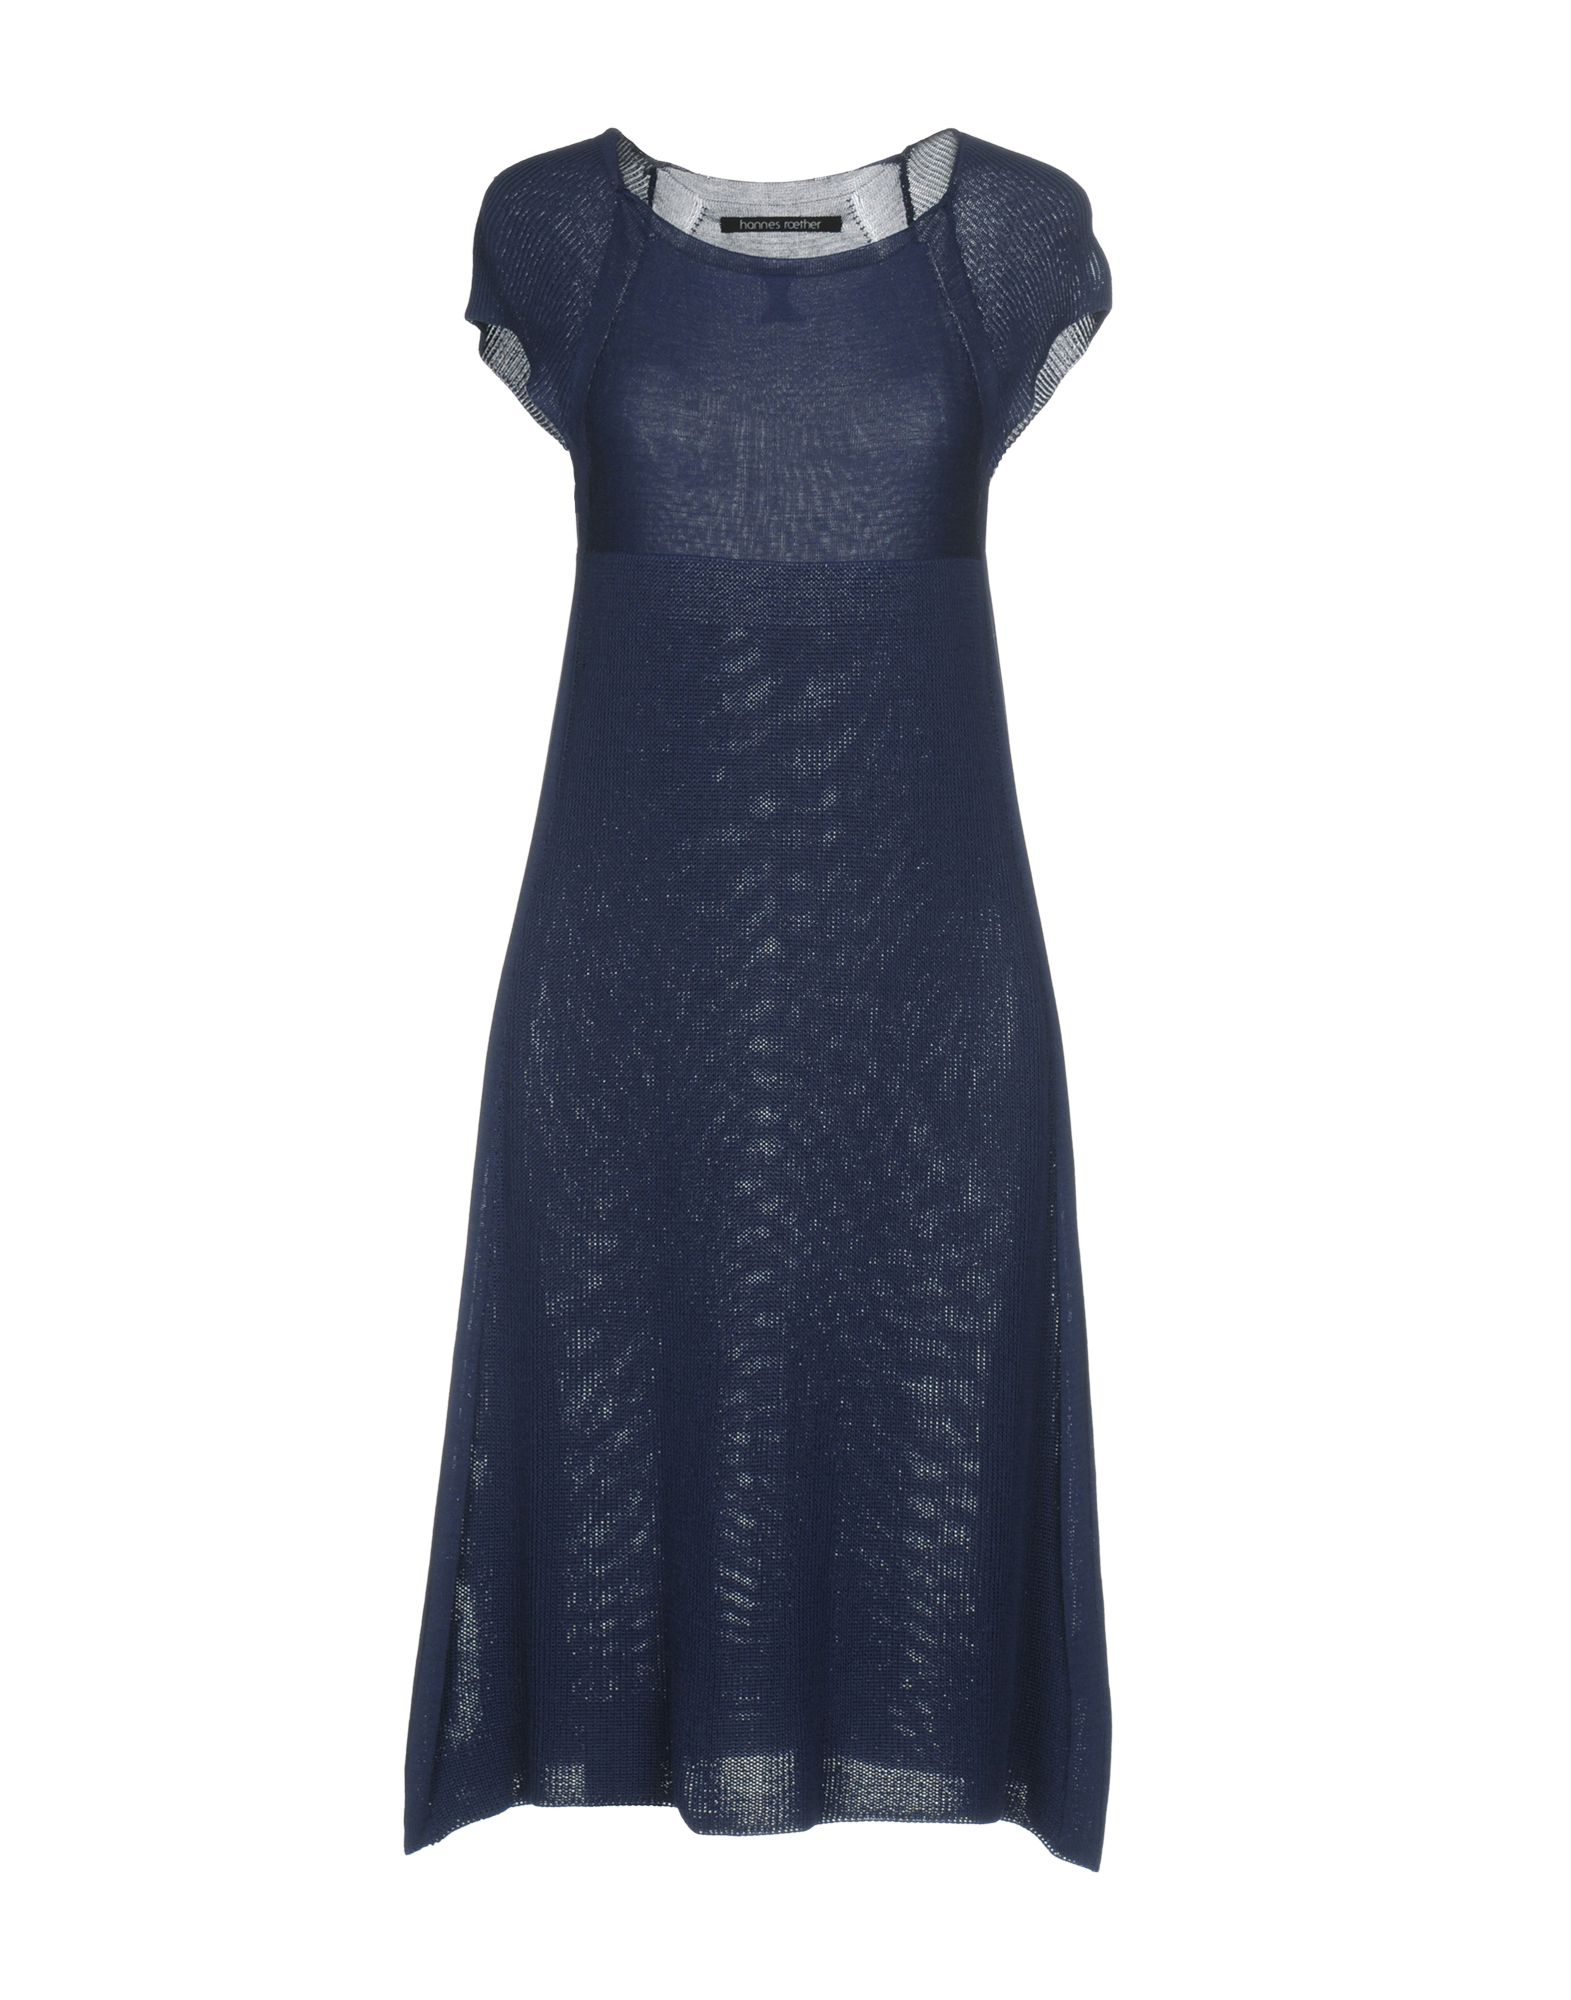 HANNES ROETHER Knee-Length Dress in Blue